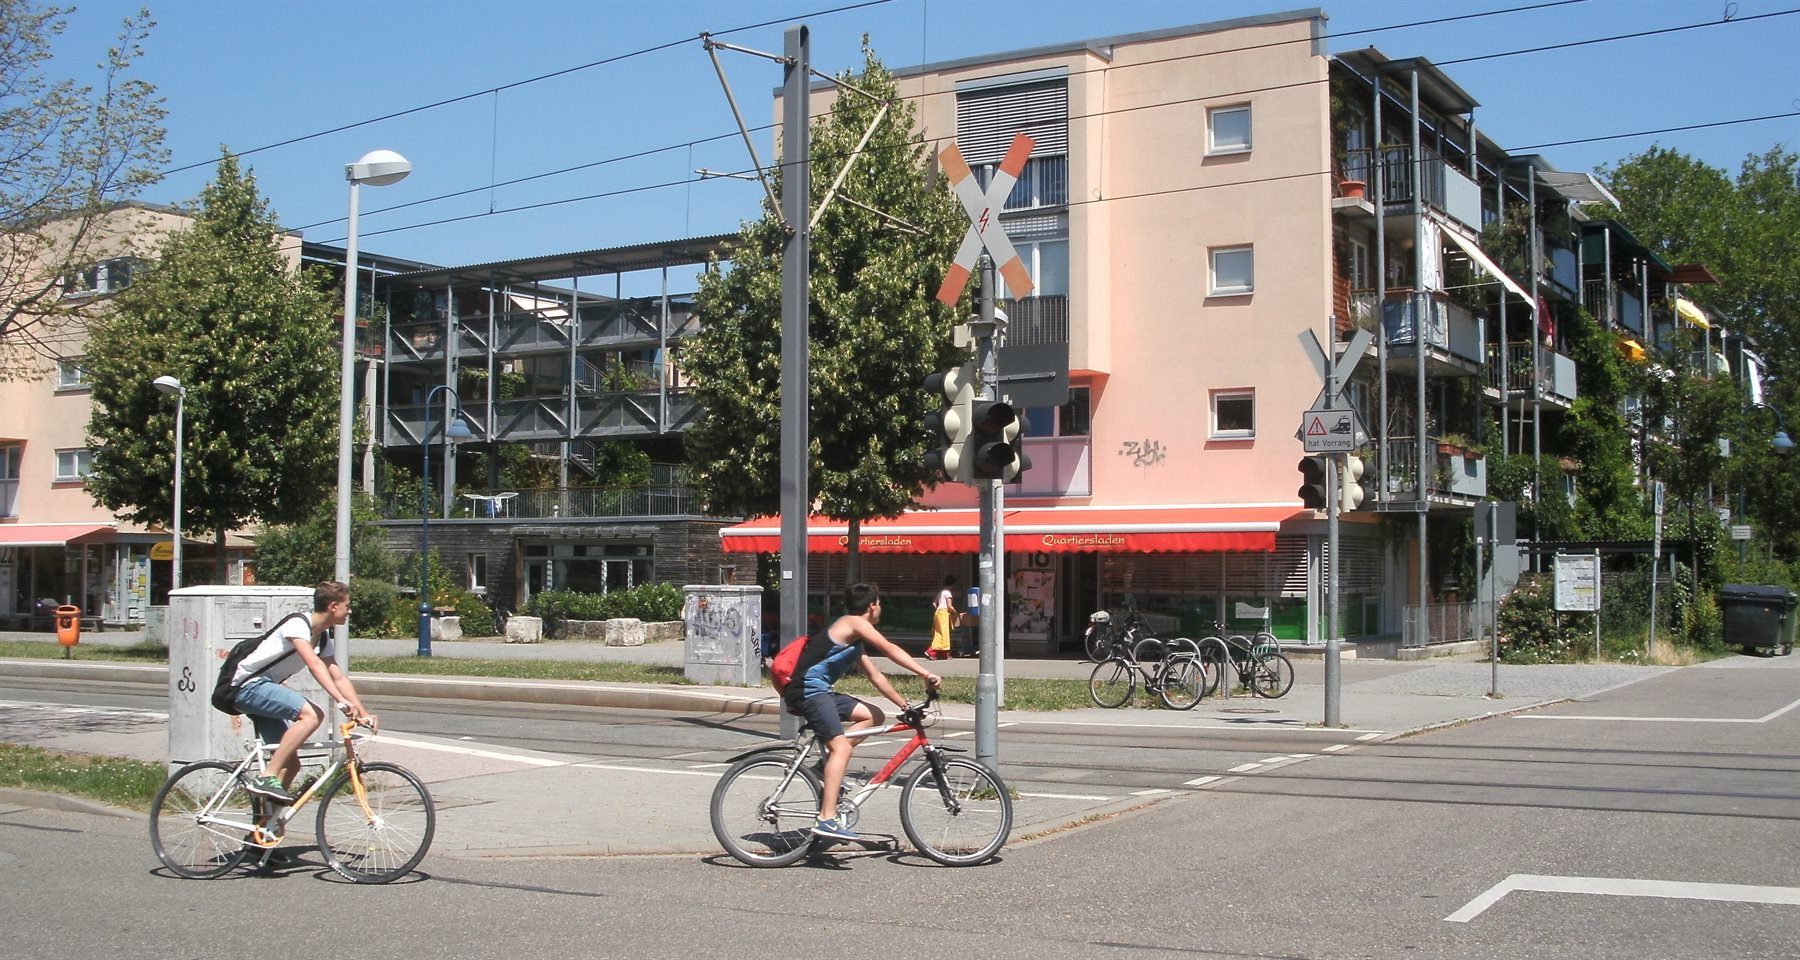 4d90f7e11 The central axis of Vauban features commercial activities mixed with  residential living